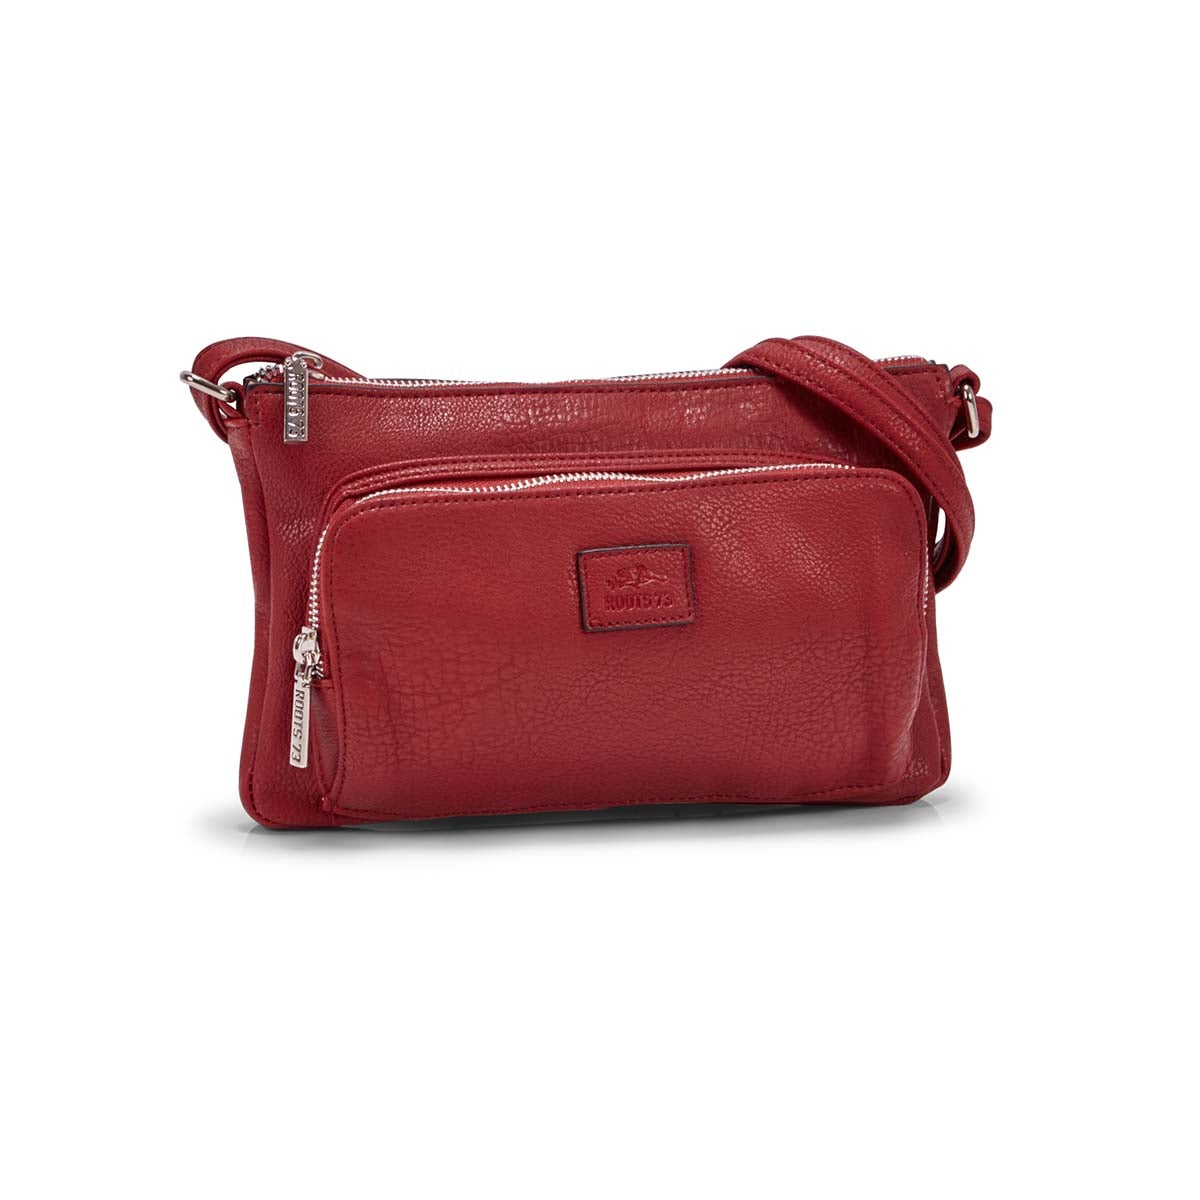 Women's  R4886 dark red cross body bag